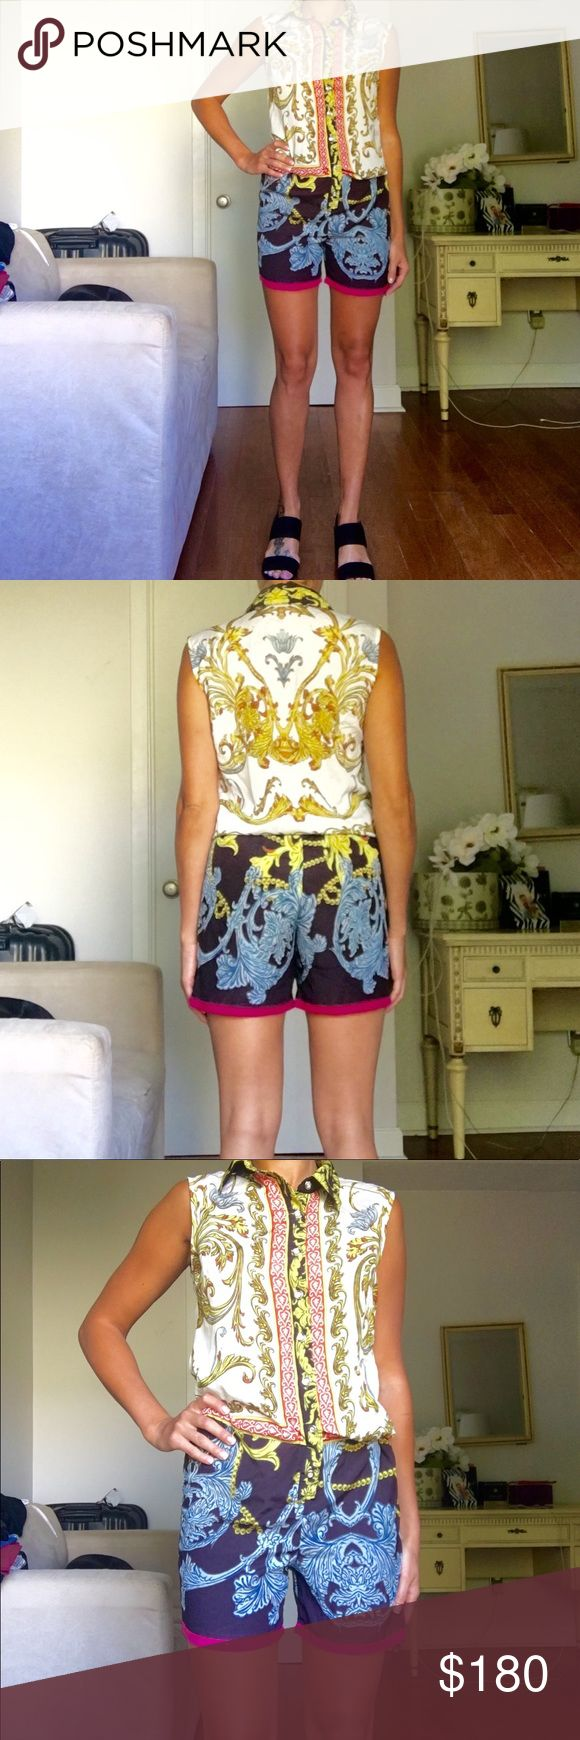 Dolce&Gabana print romber ❤️ Hight quality Romber Dolce&Gabana print, worn few times , excellent condition. Tag say M but will fit on S-M Dolce & Gabbana Shorts